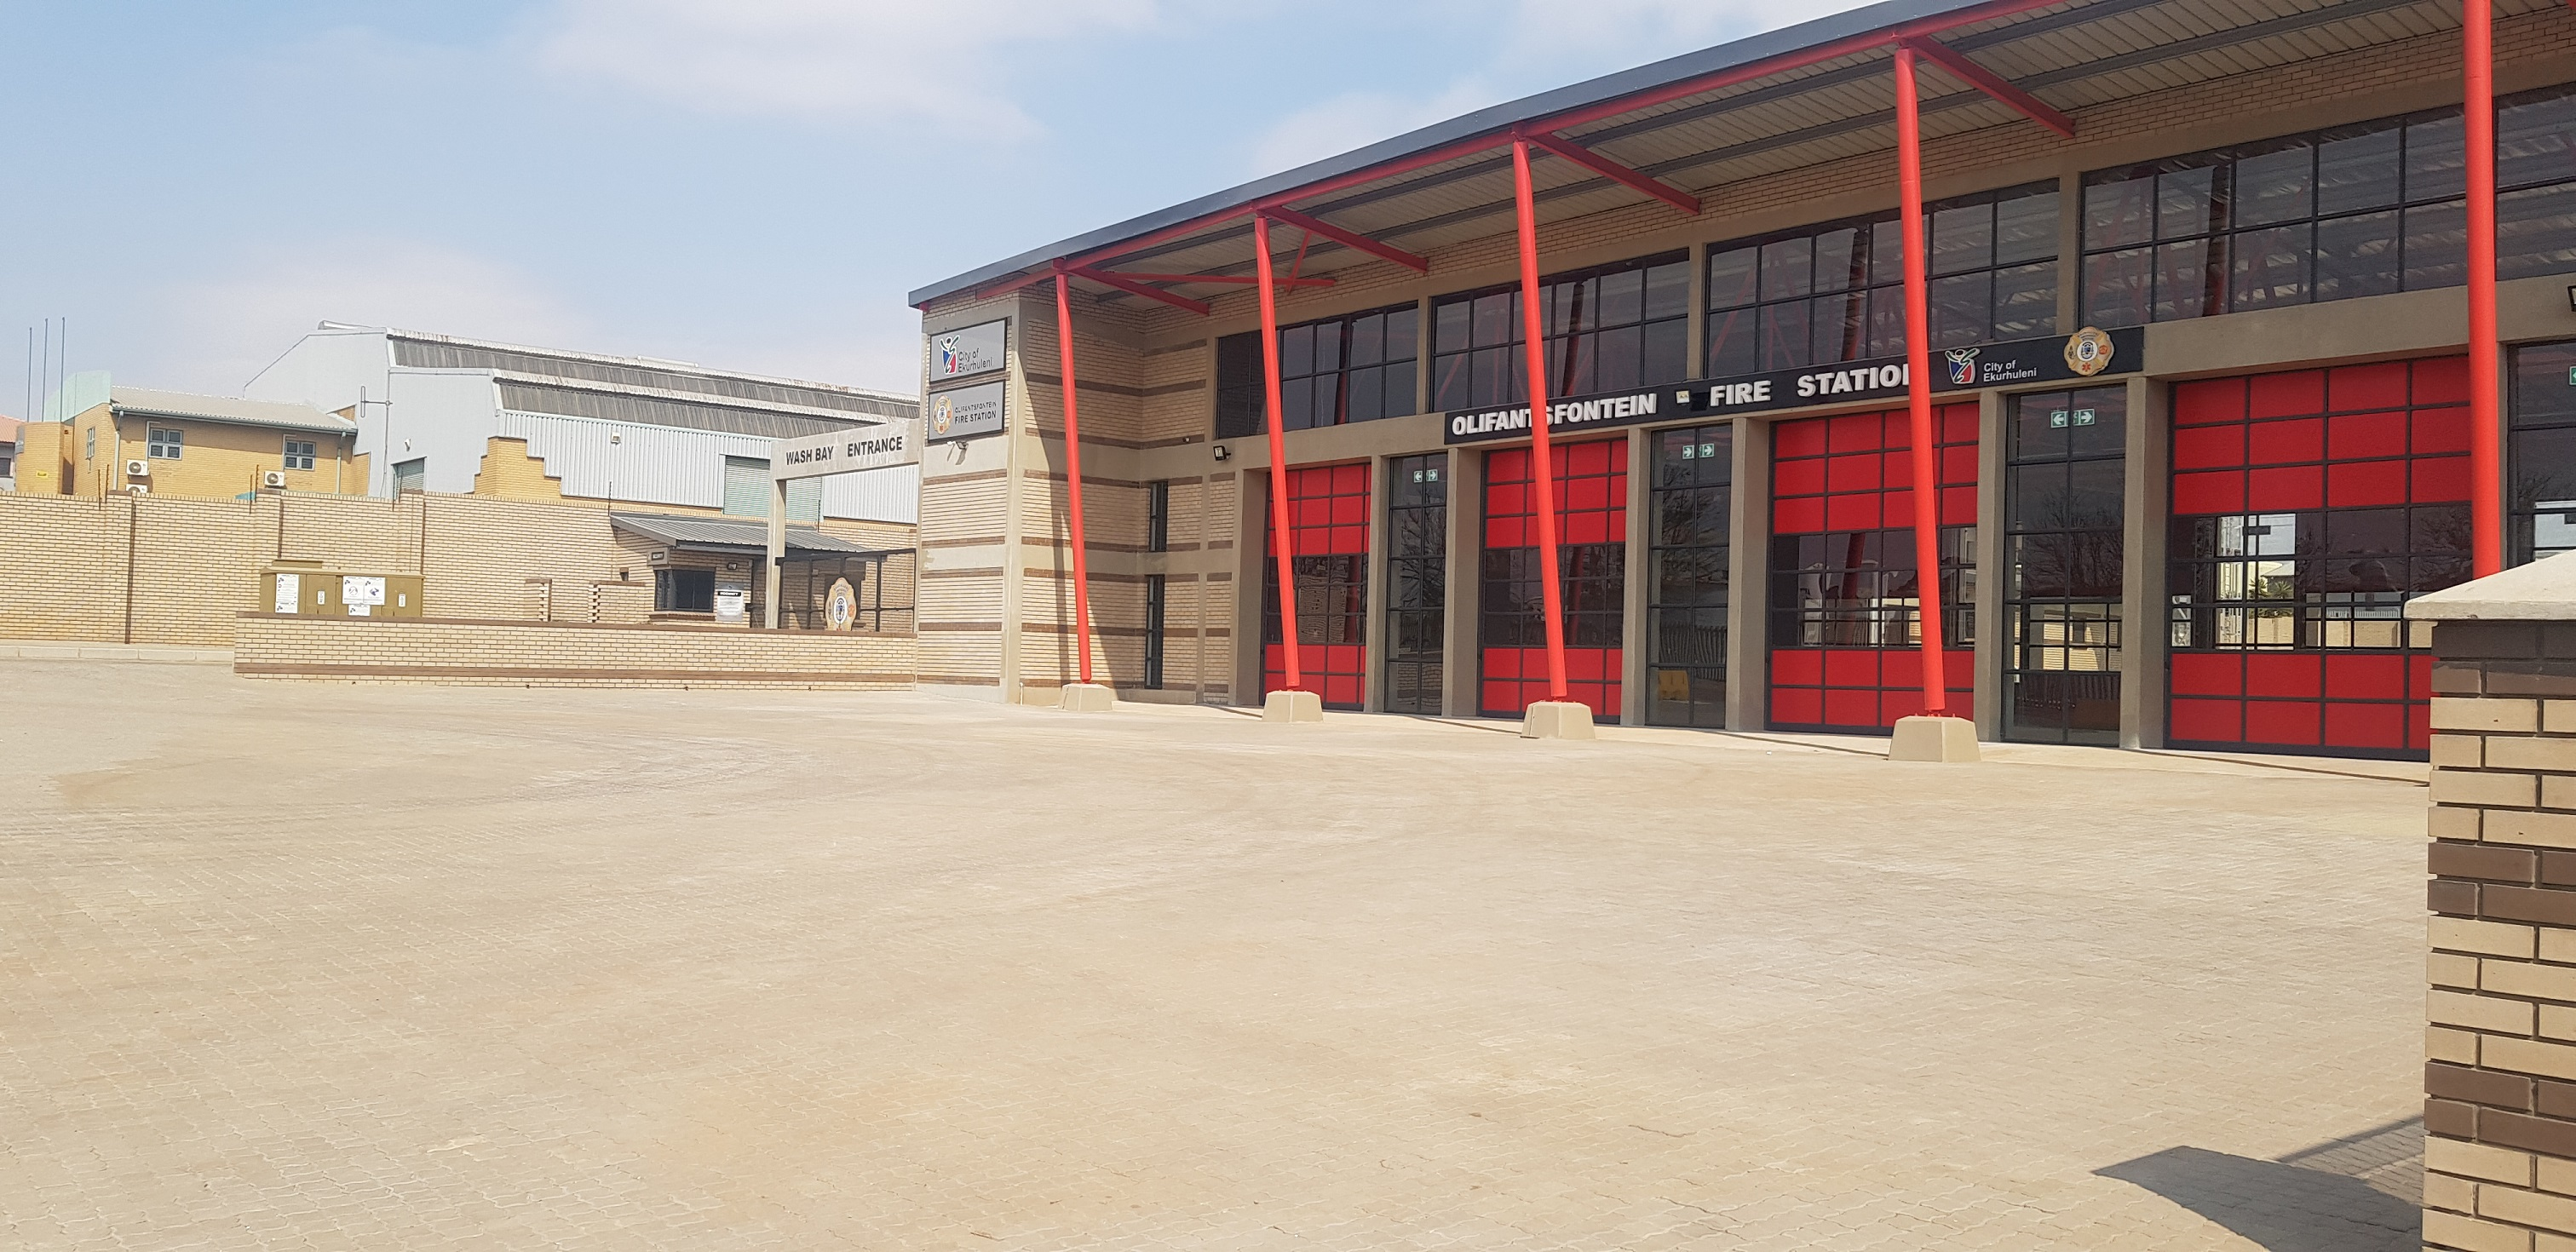 TECHNICRETE PAVERS AND KERBS ADD FLARE TO NEW OLIFANTSFONTEIN FIRE STATION